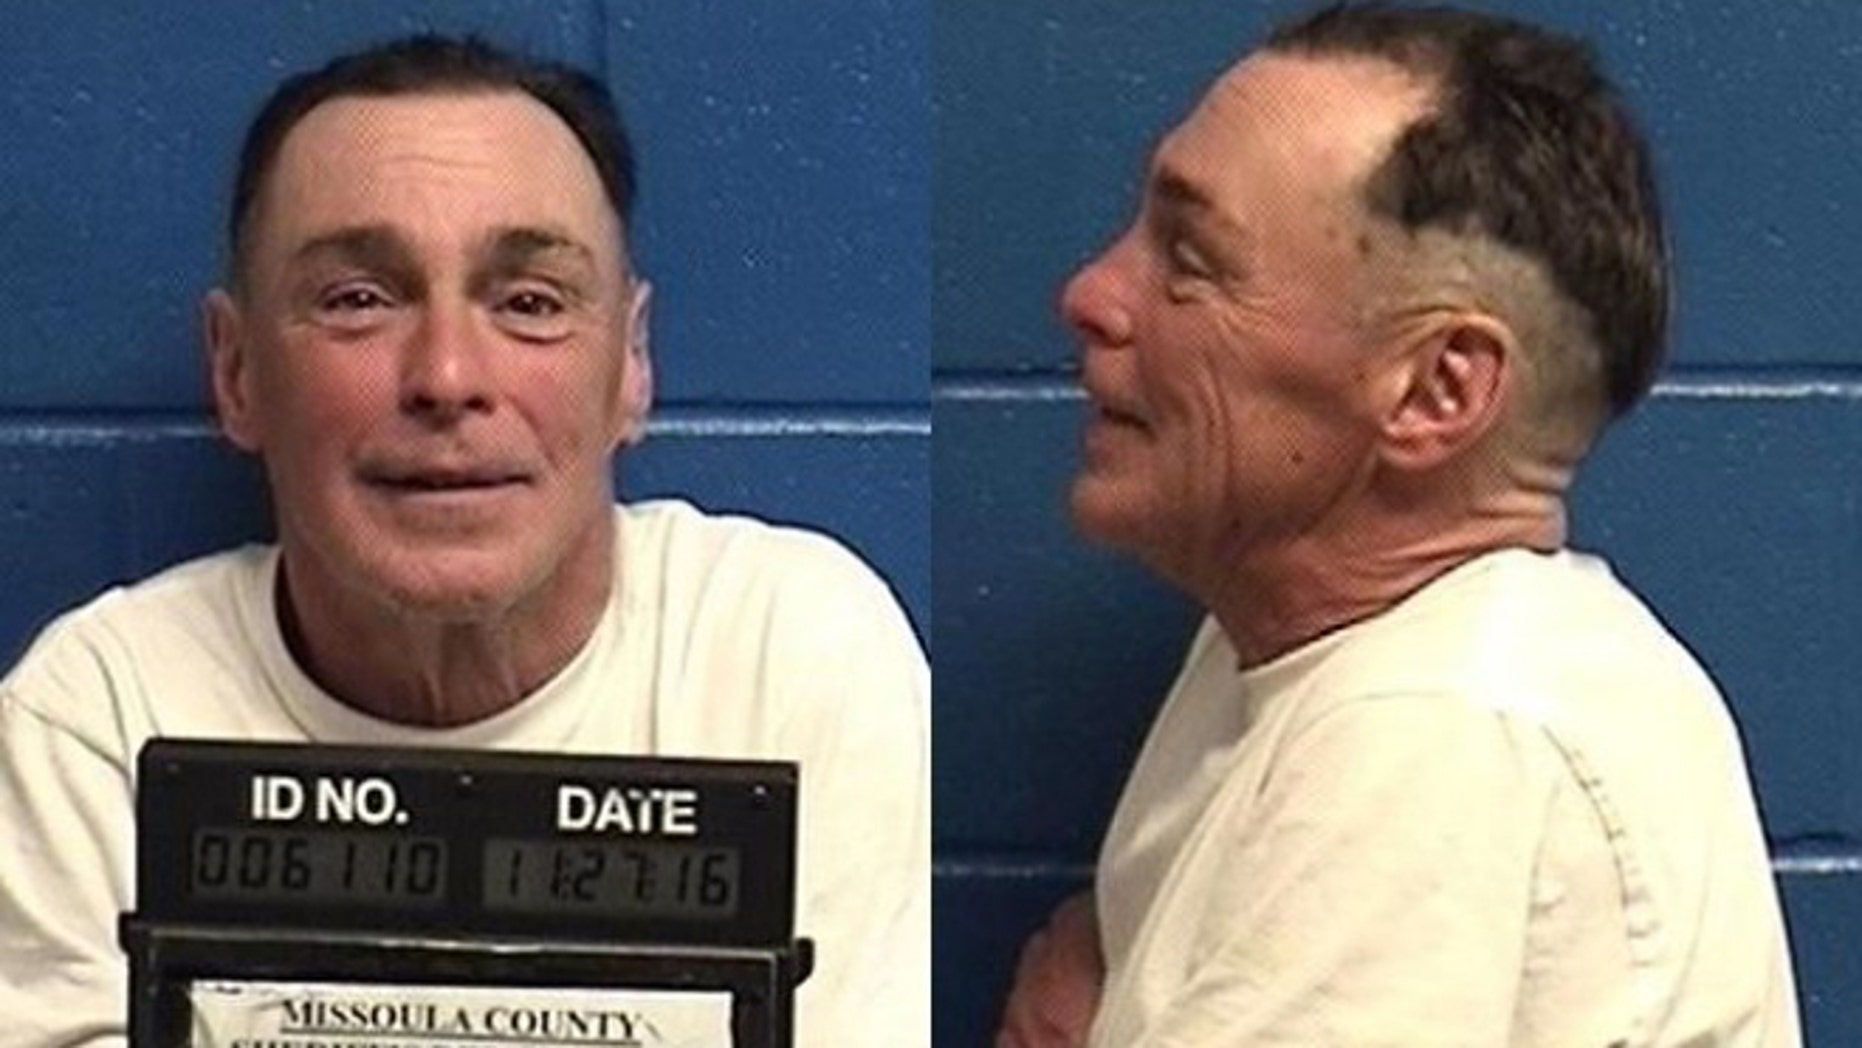 William Kirby, 60, allegedly broke into a home and stole two beers. He is being held on bail for $50,000.